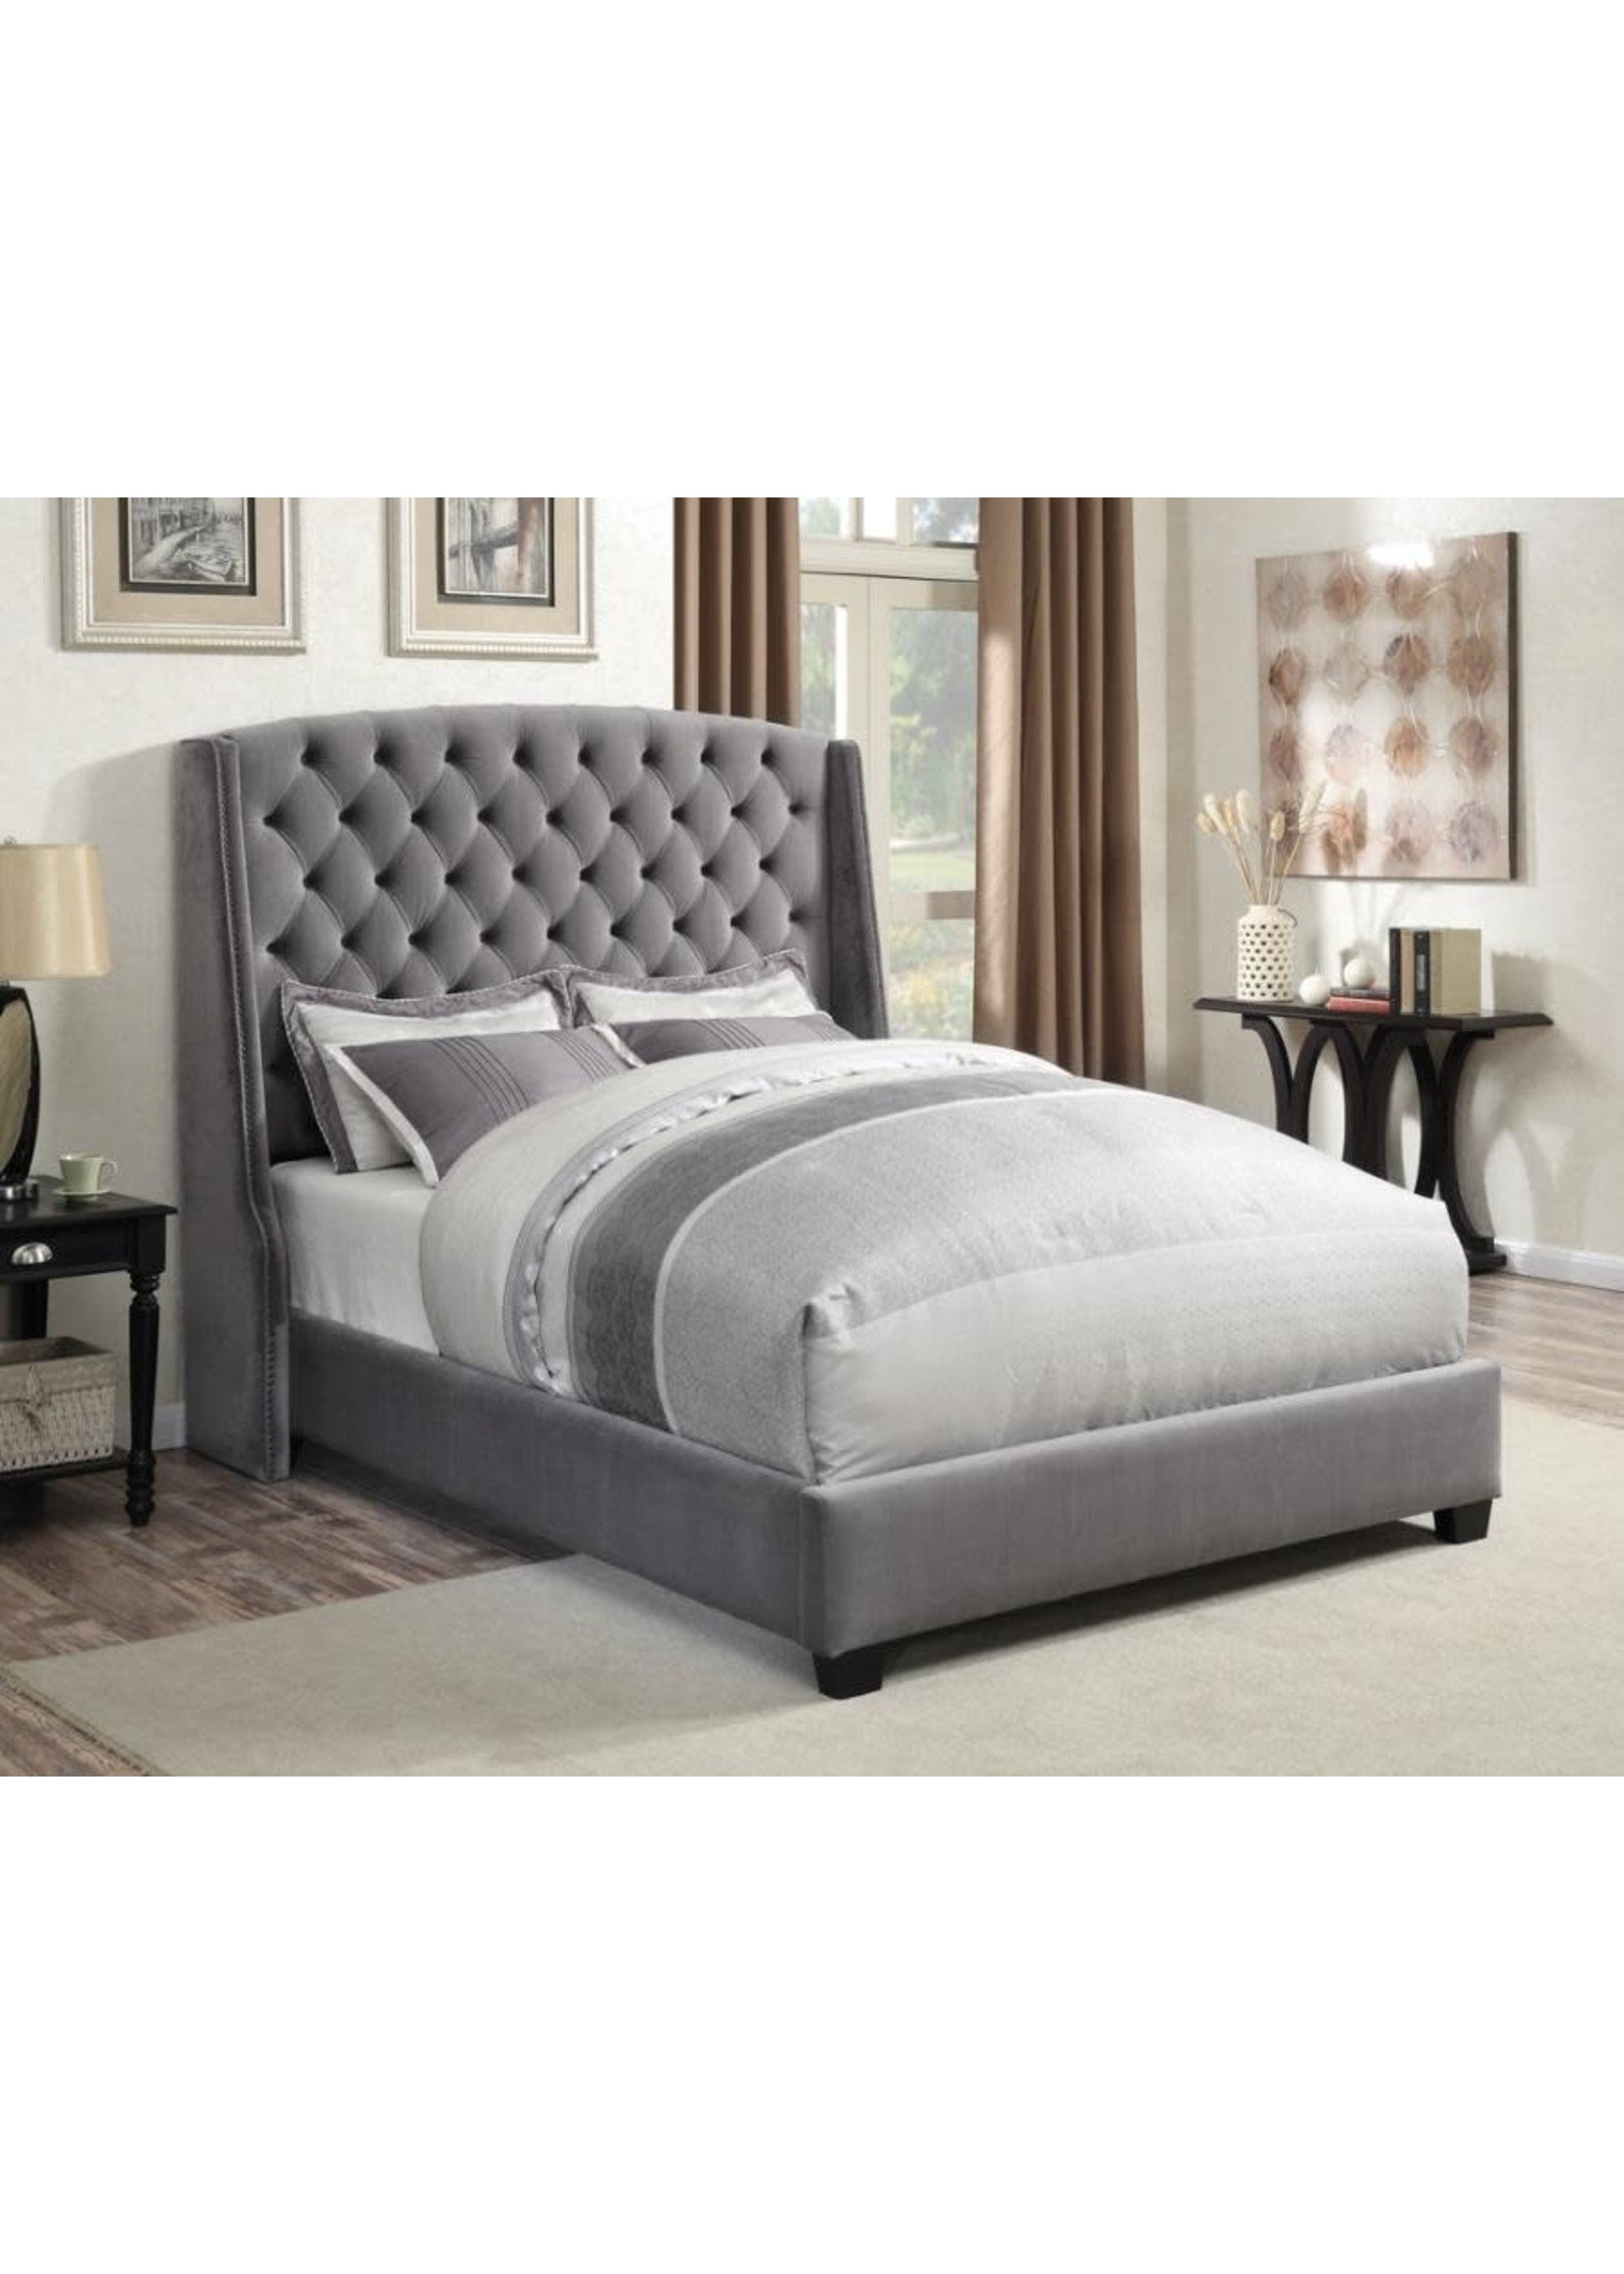 Coaster Furniture Pissarro  Queen Upholstered Bed in Grey Velvet Fabric by Coaster